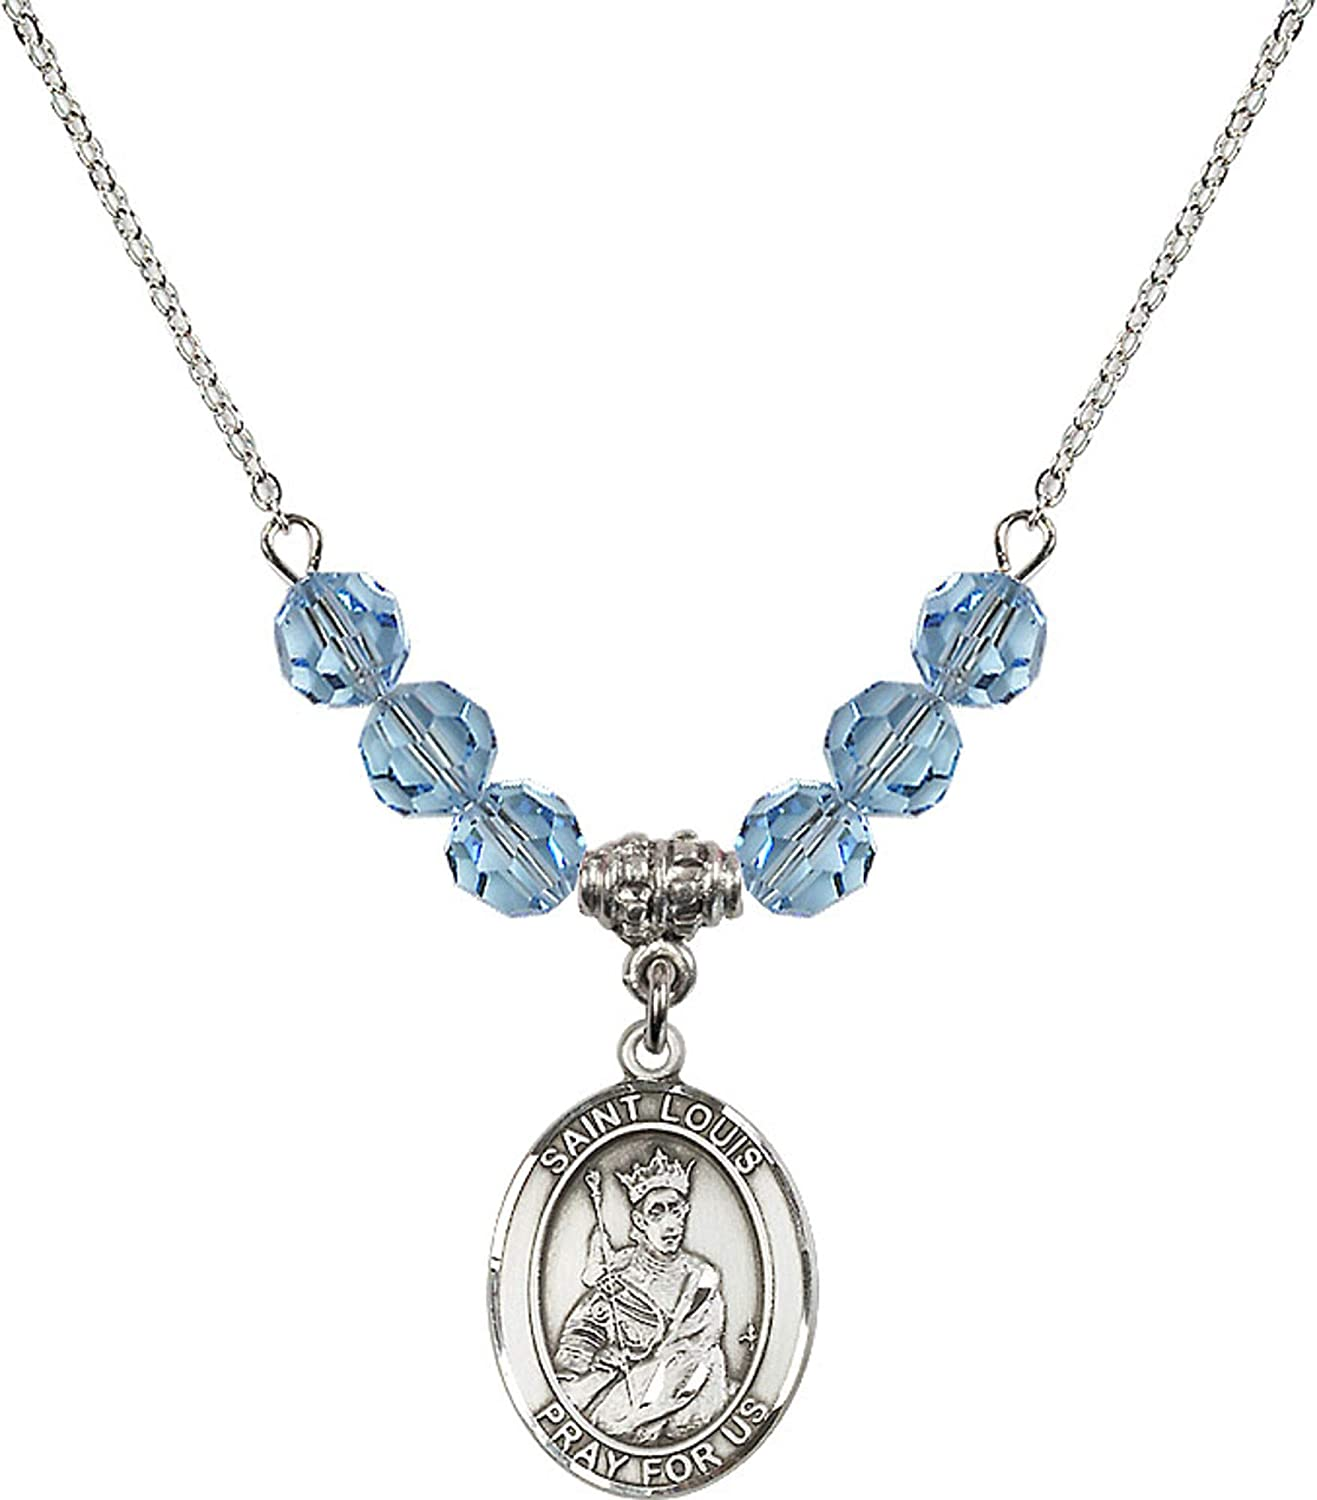 Bonyak Jewelry 18 Inch Rhodium Plated Necklace w// 6mm Blue March Birth Month Stone Beads and Saint Louise de Marillac Charm